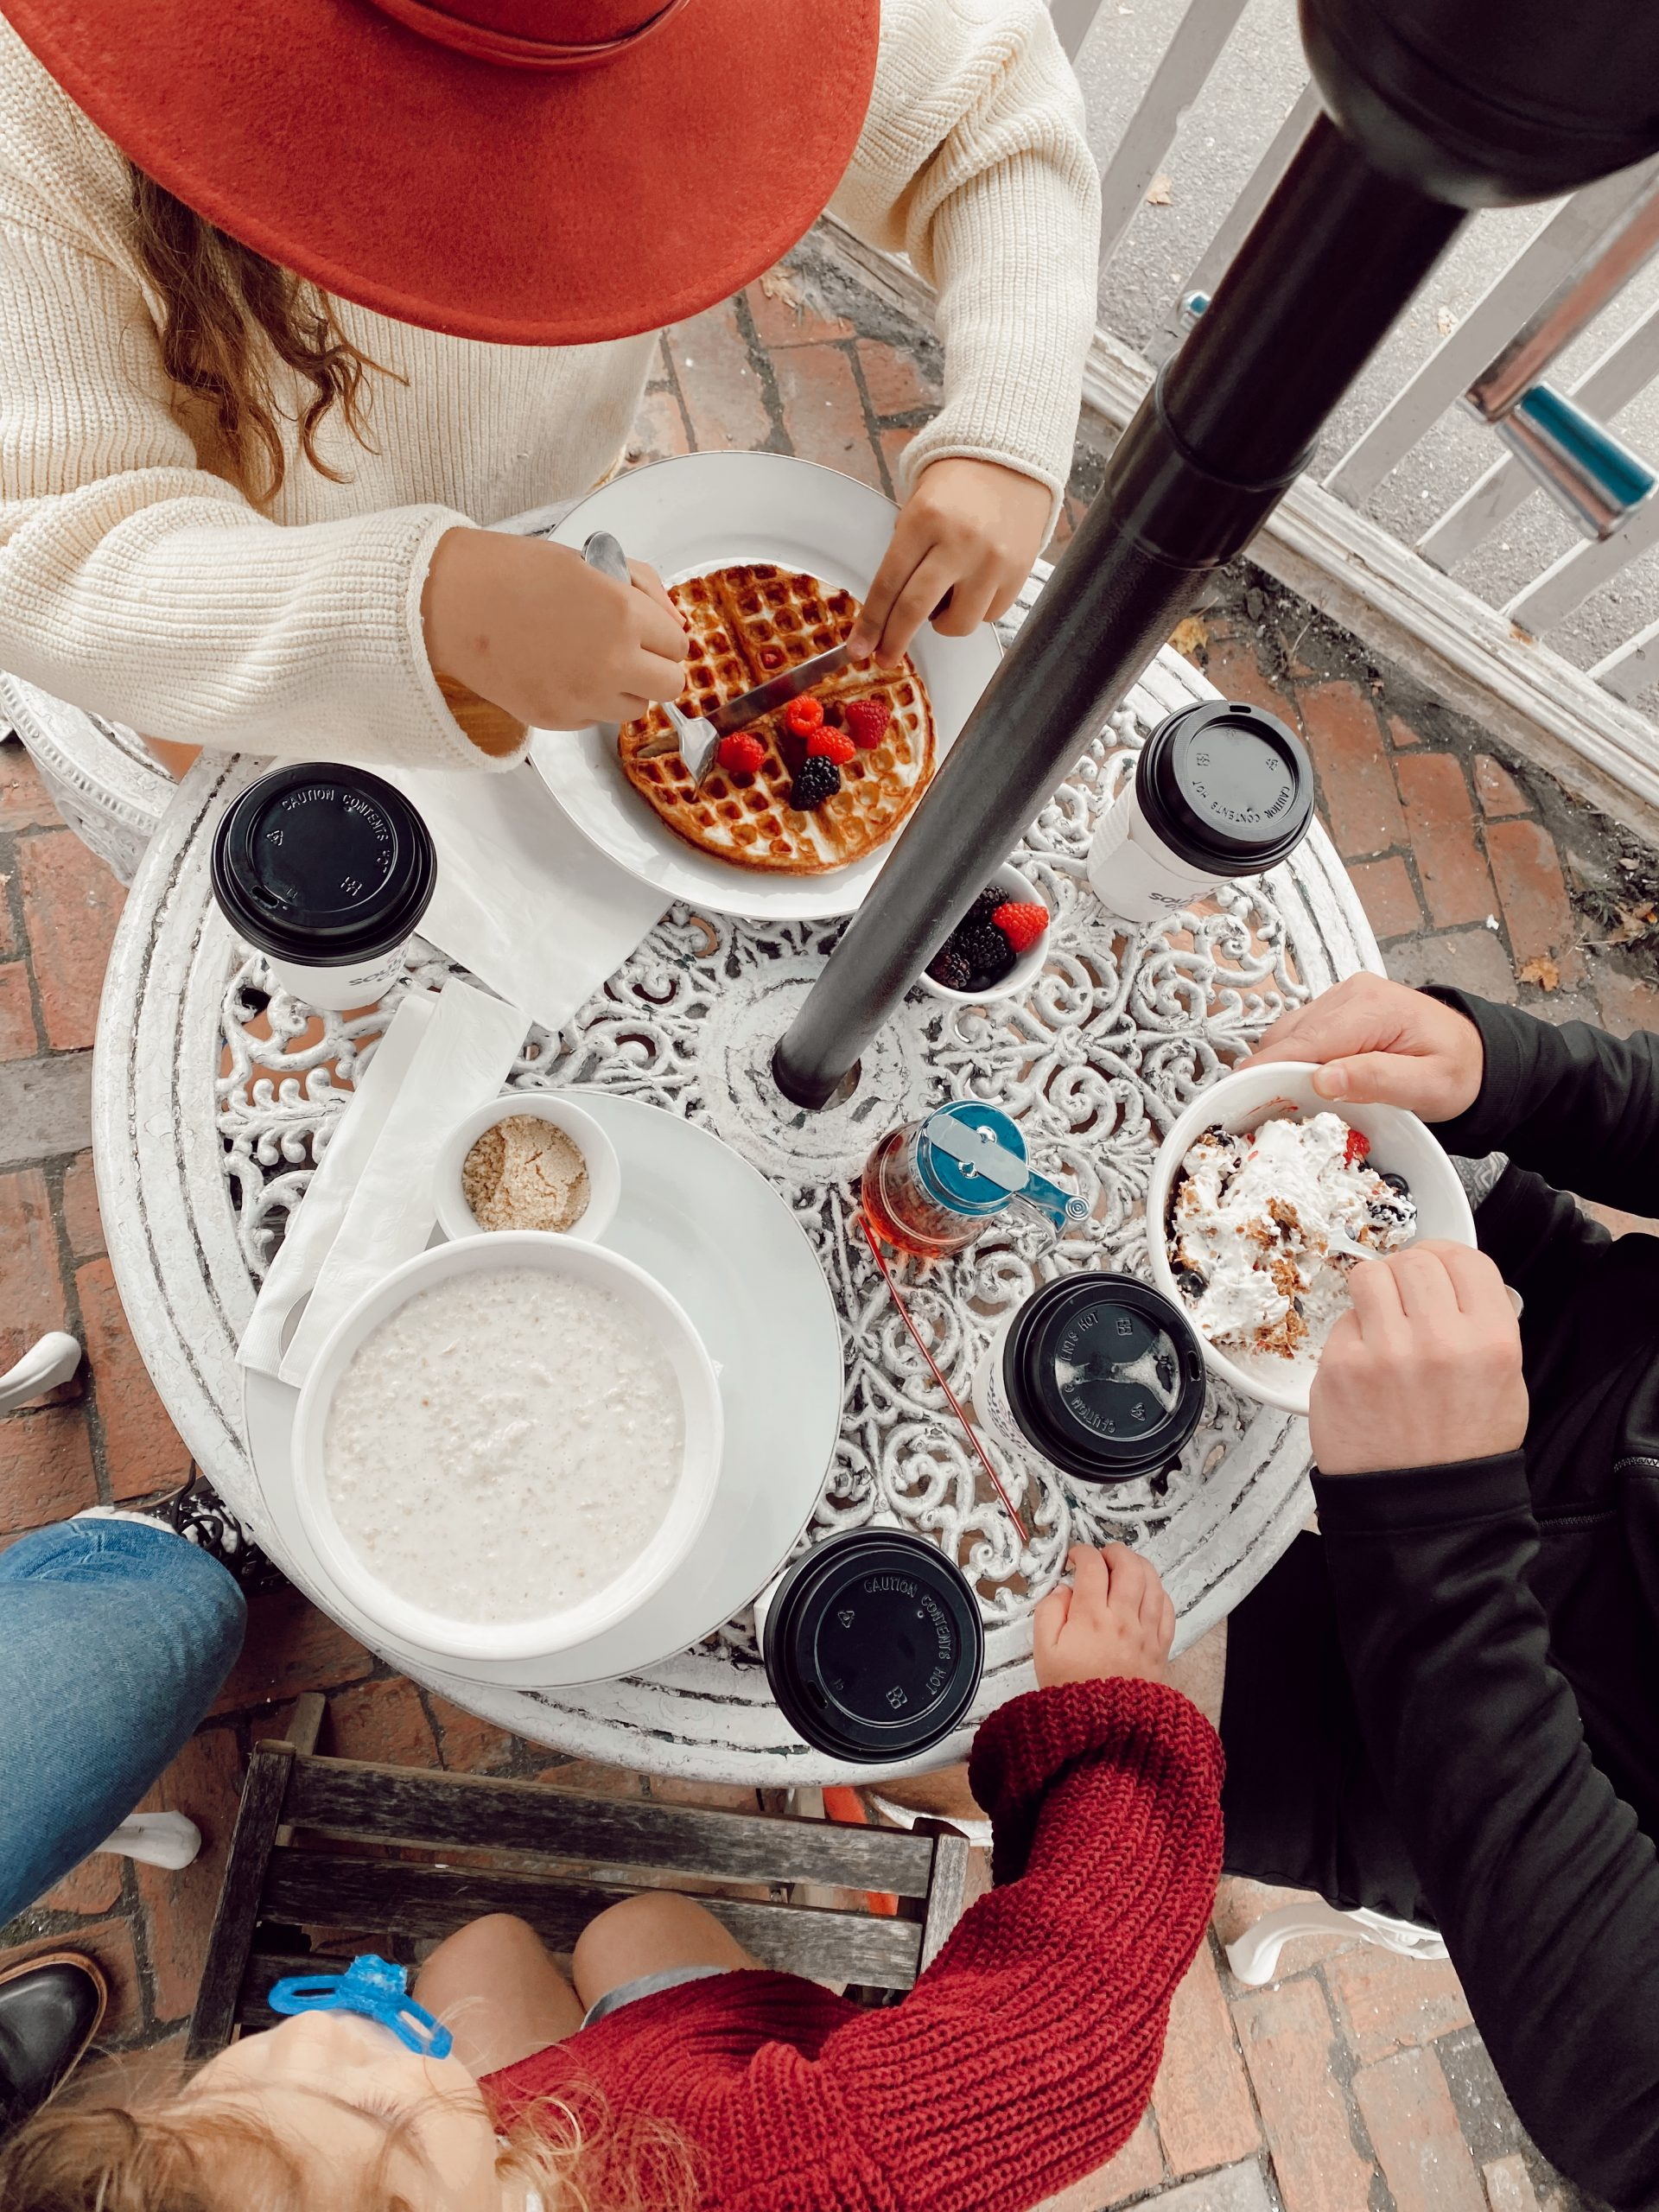 a family eating breakfast of waffles and oatmeal over a white table